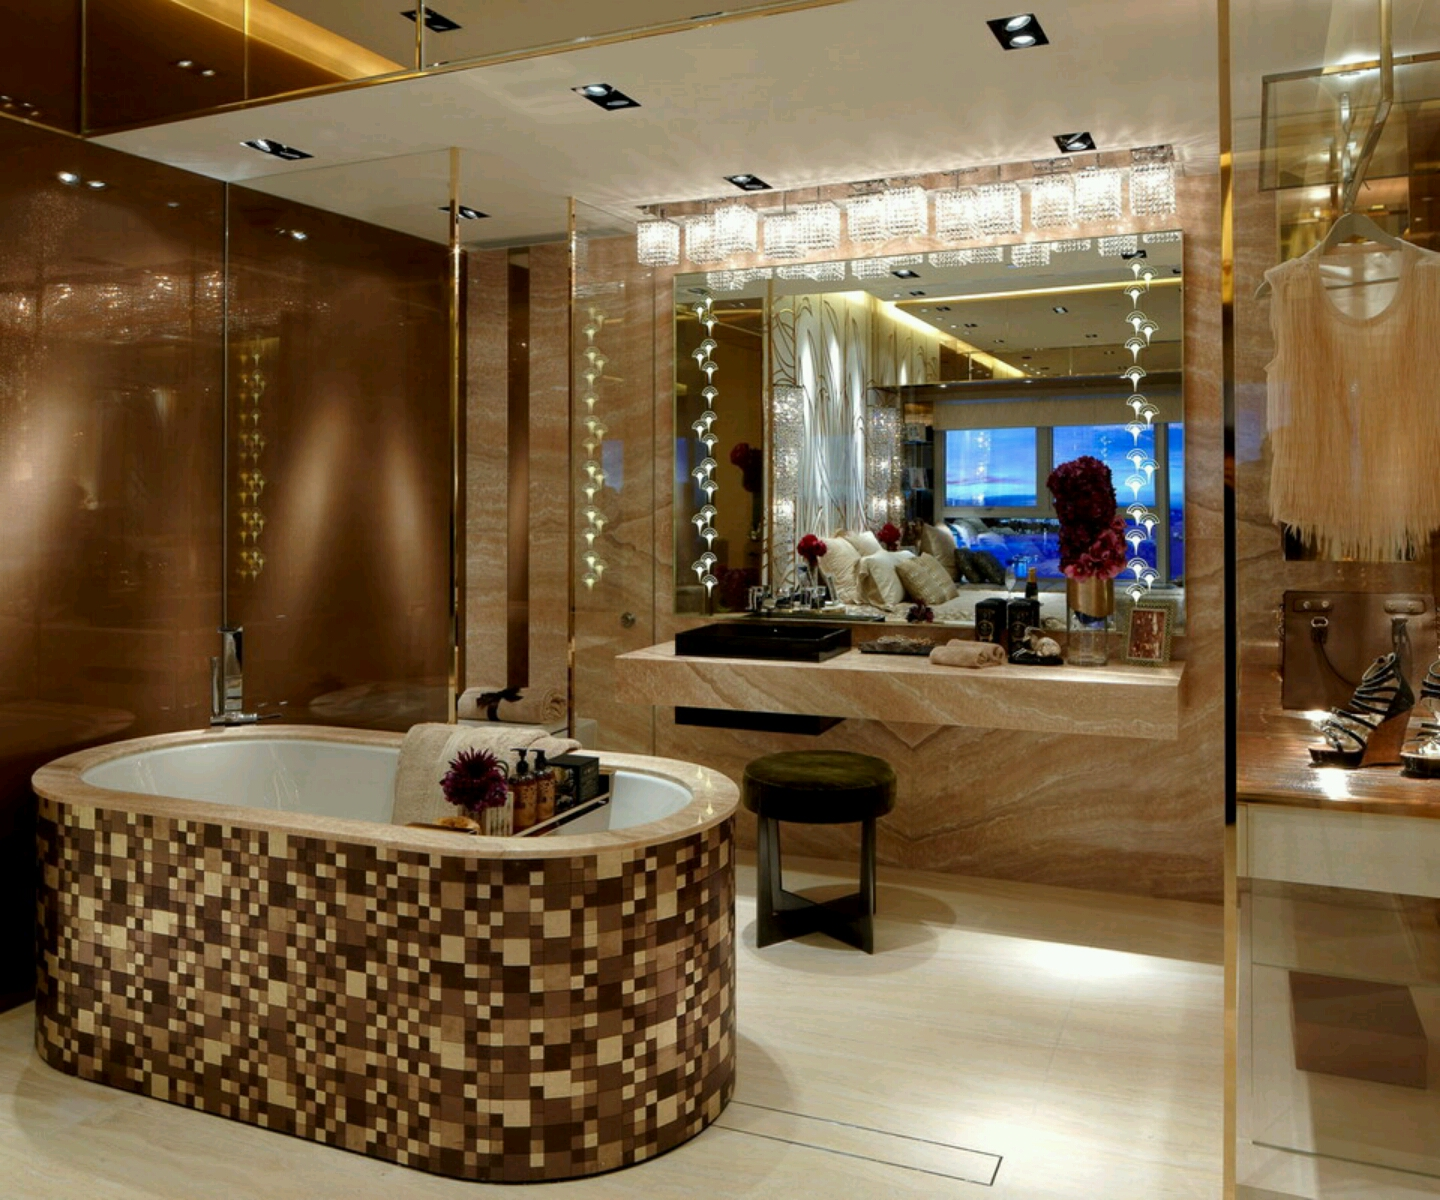 Modern Homes Modern Bathrooms Designs Ideas: Modern Homes Modern Bathrooms Designs Ideas.